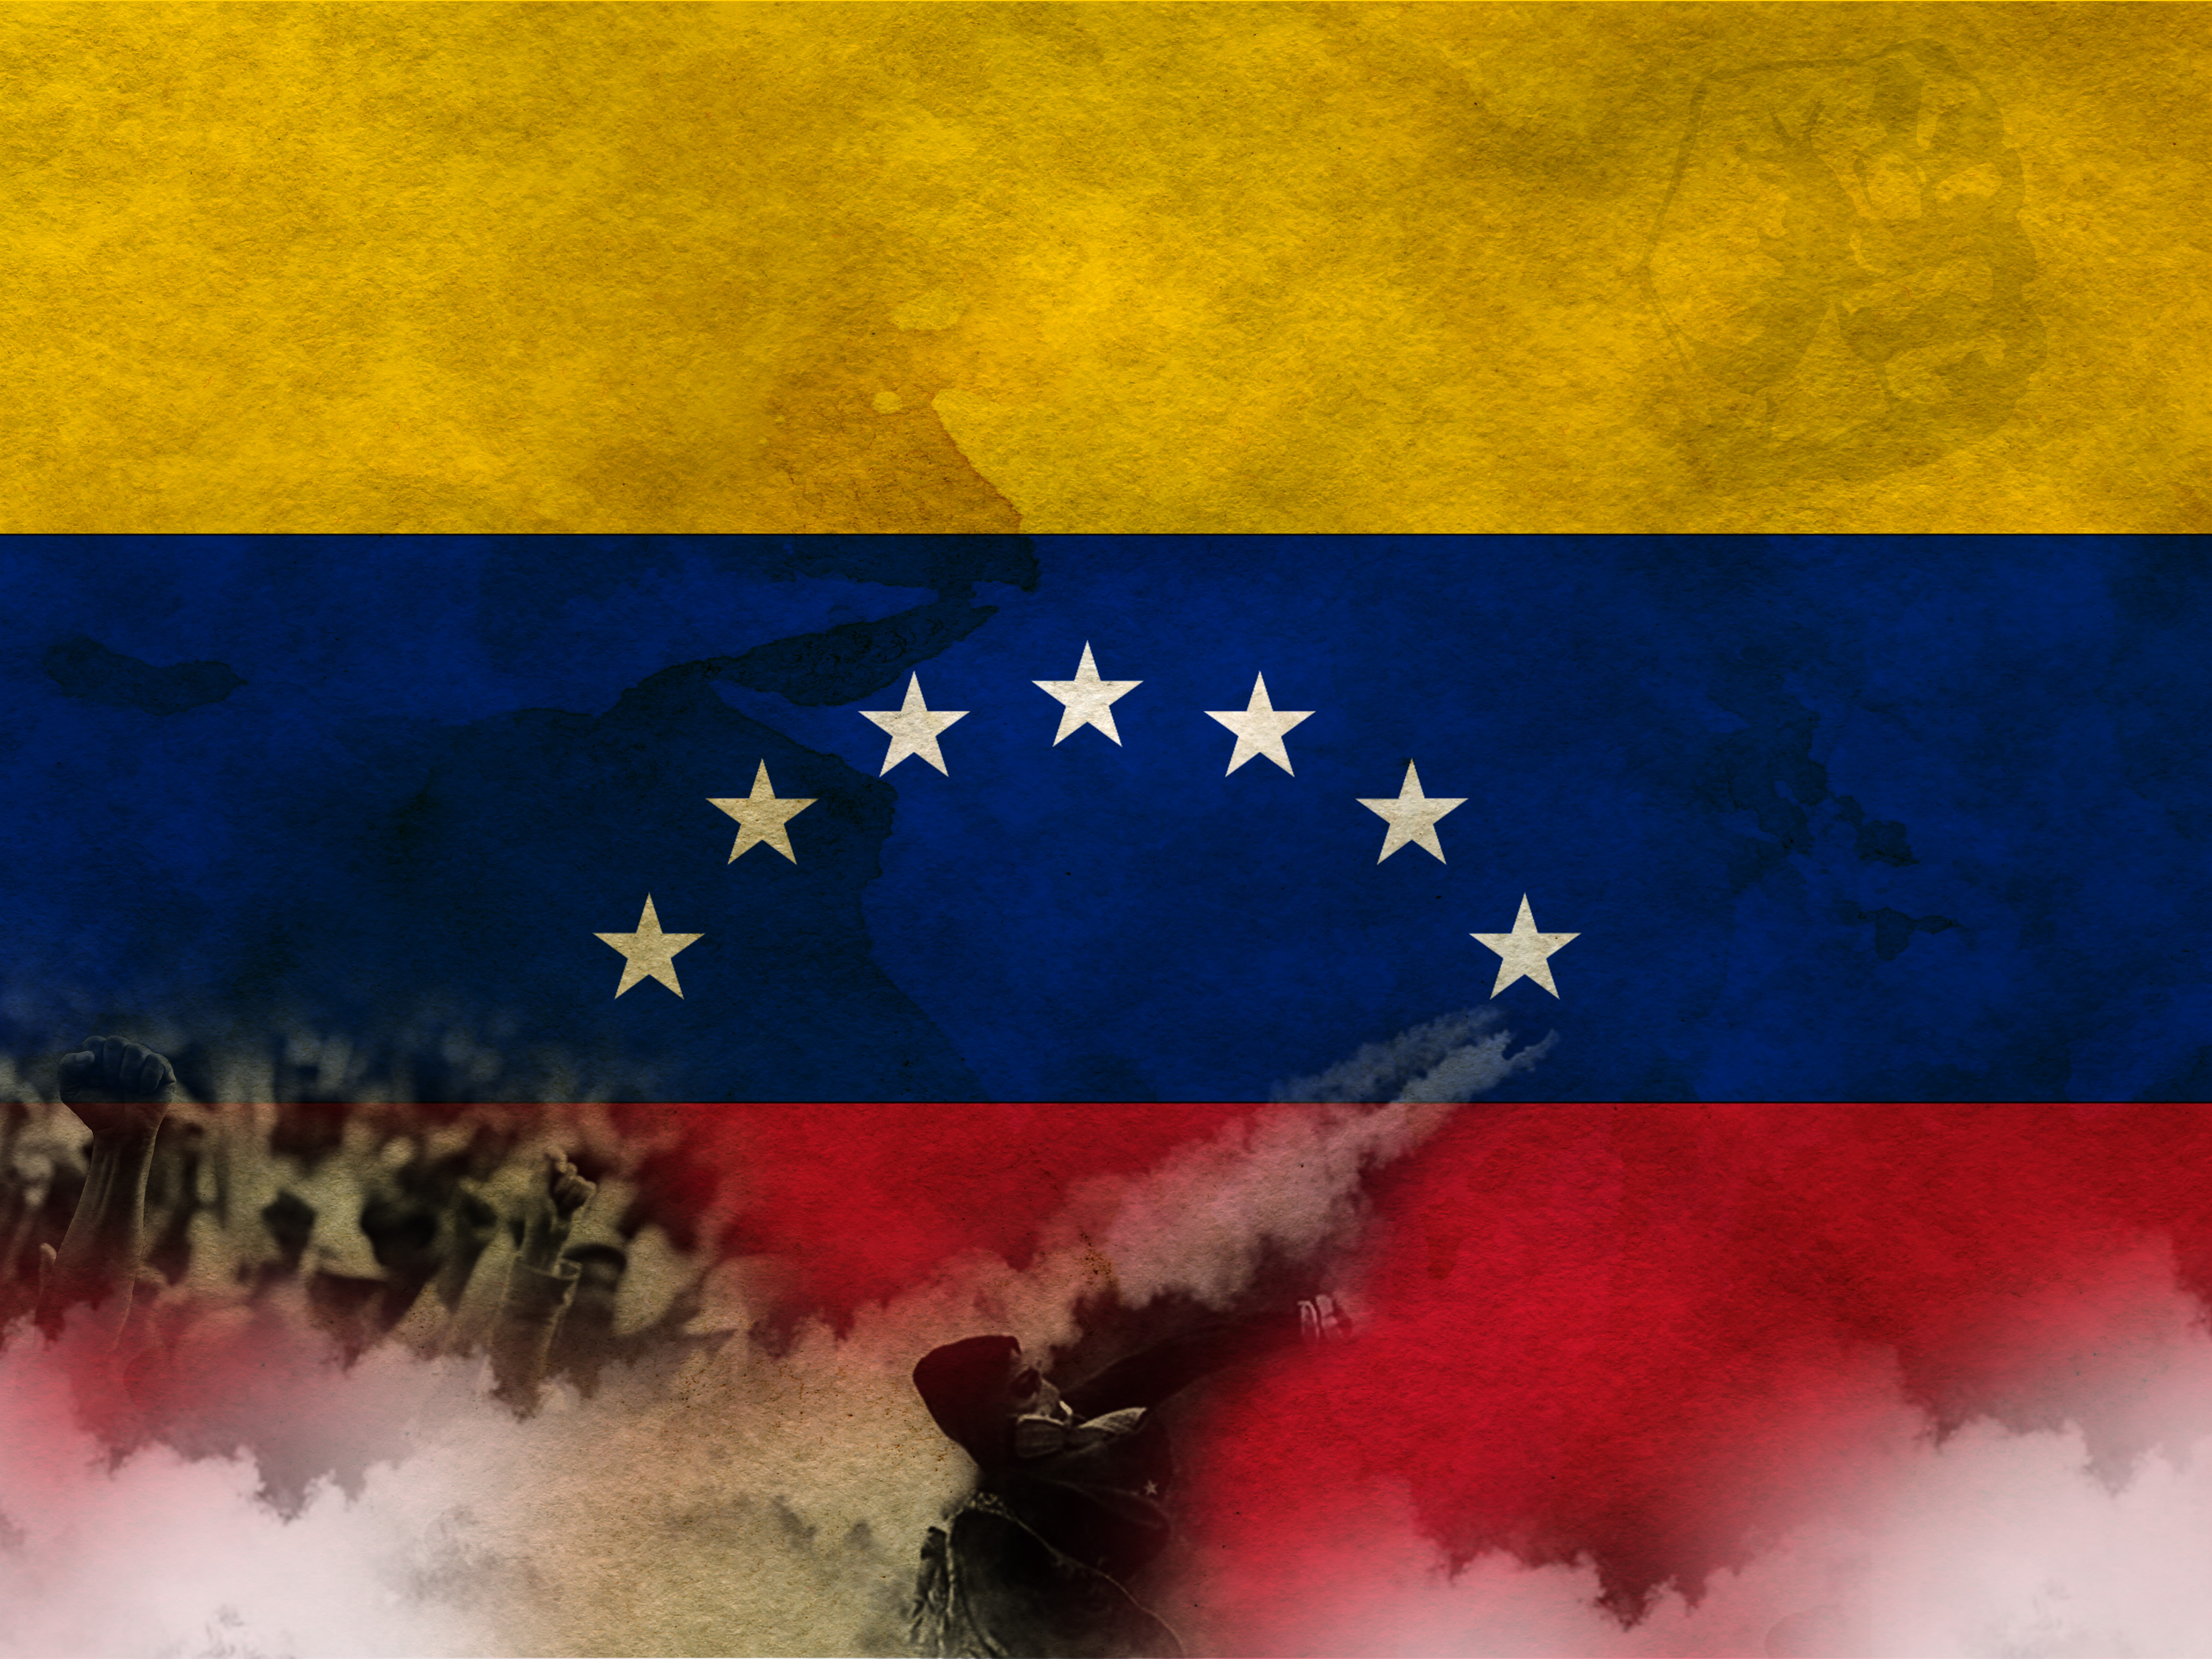 Venezuela's flag and protesters